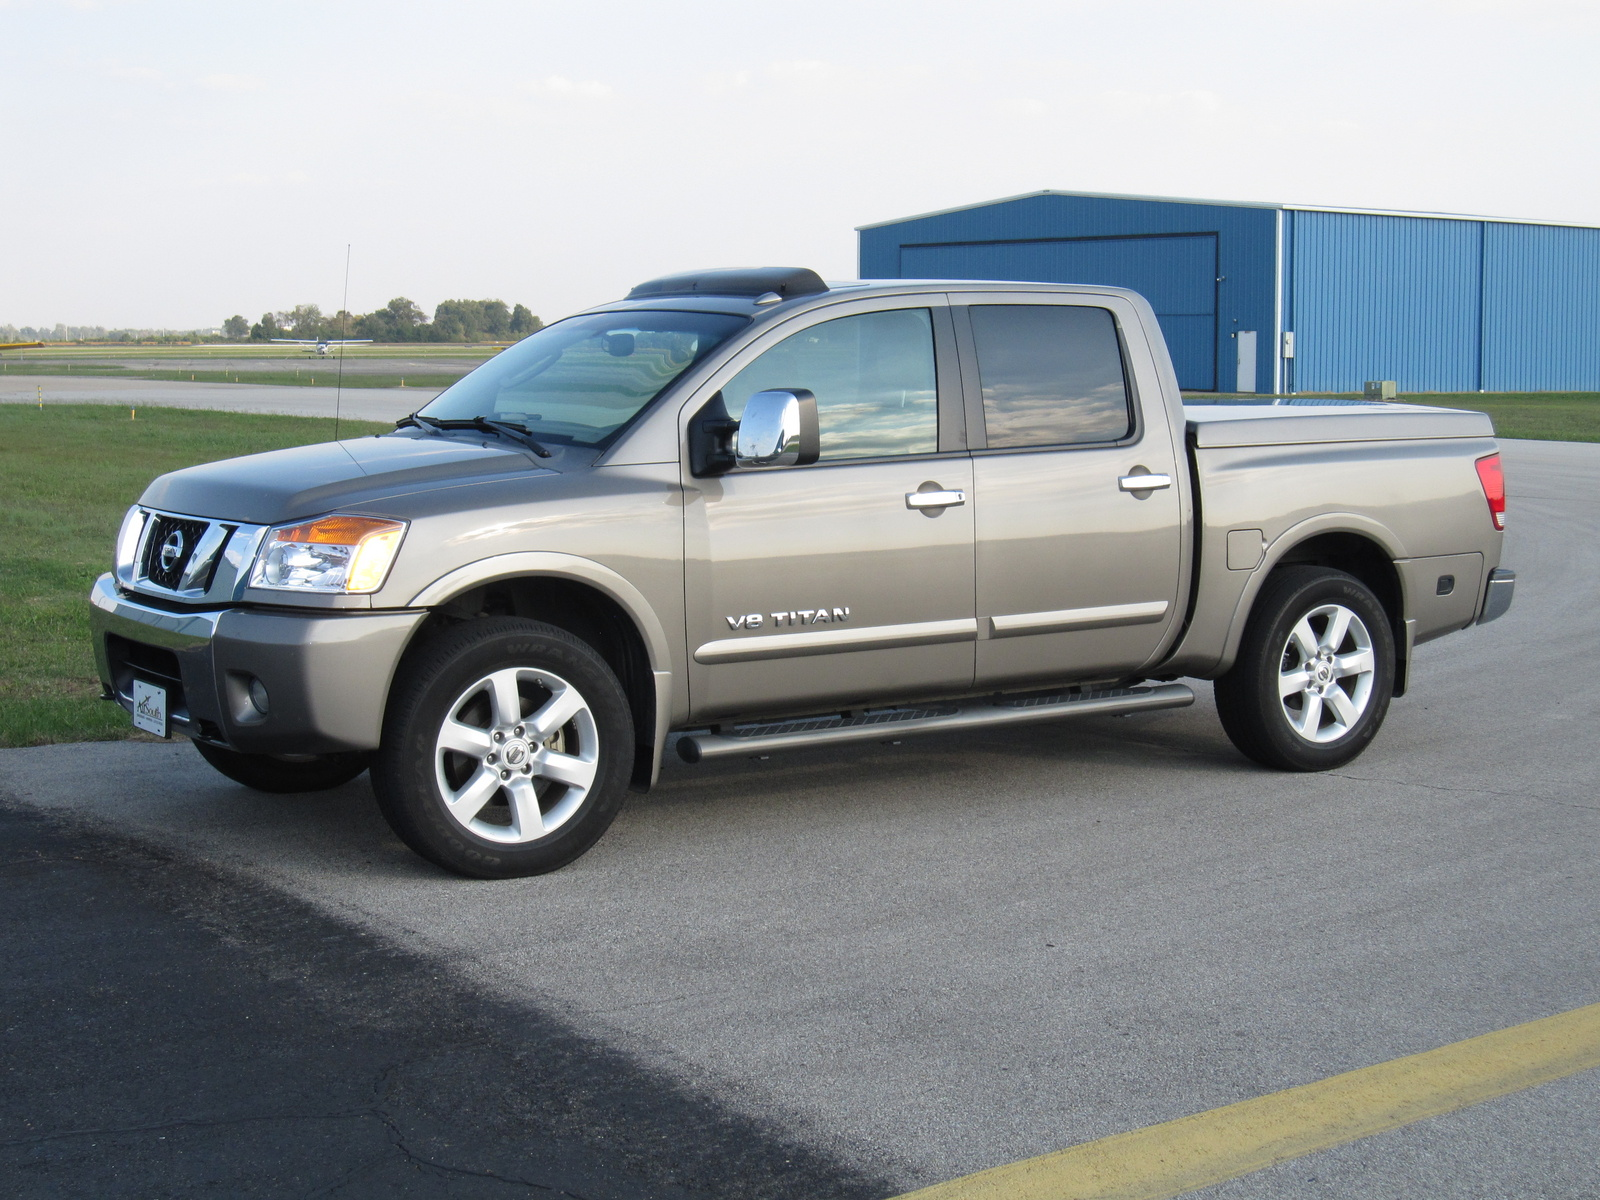 Sunny King Ford >> 2008 Nissan Titan - Pictures - CarGurus